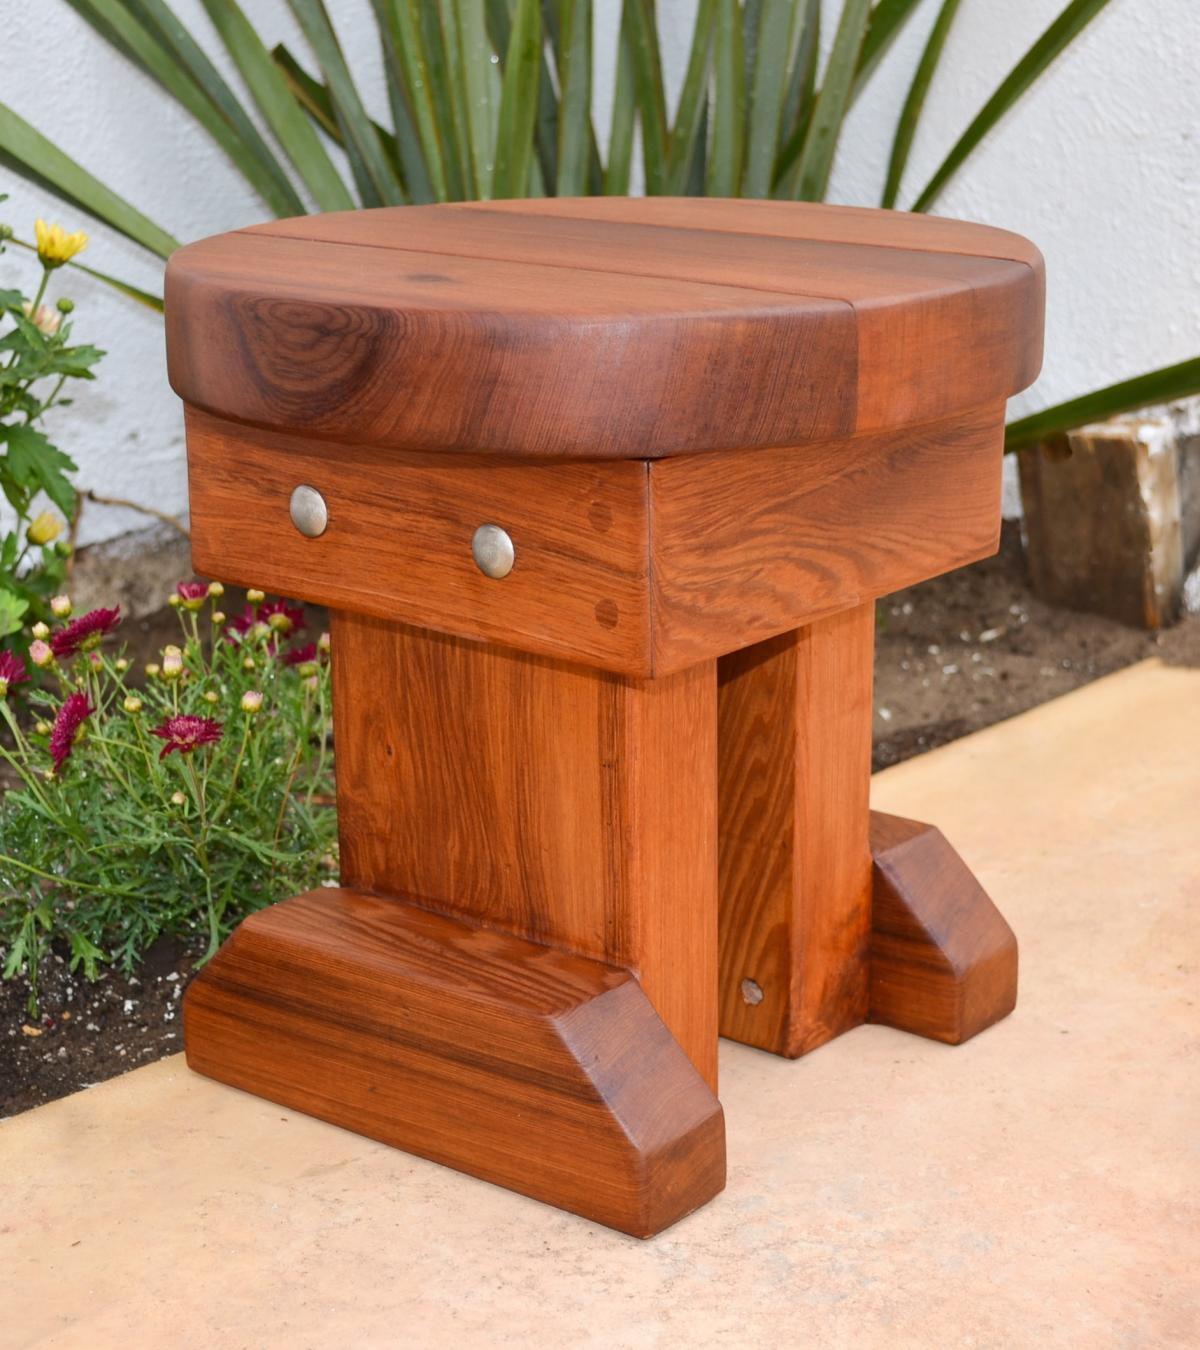 12 inch small round wood side table redwood side tables. Black Bedroom Furniture Sets. Home Design Ideas